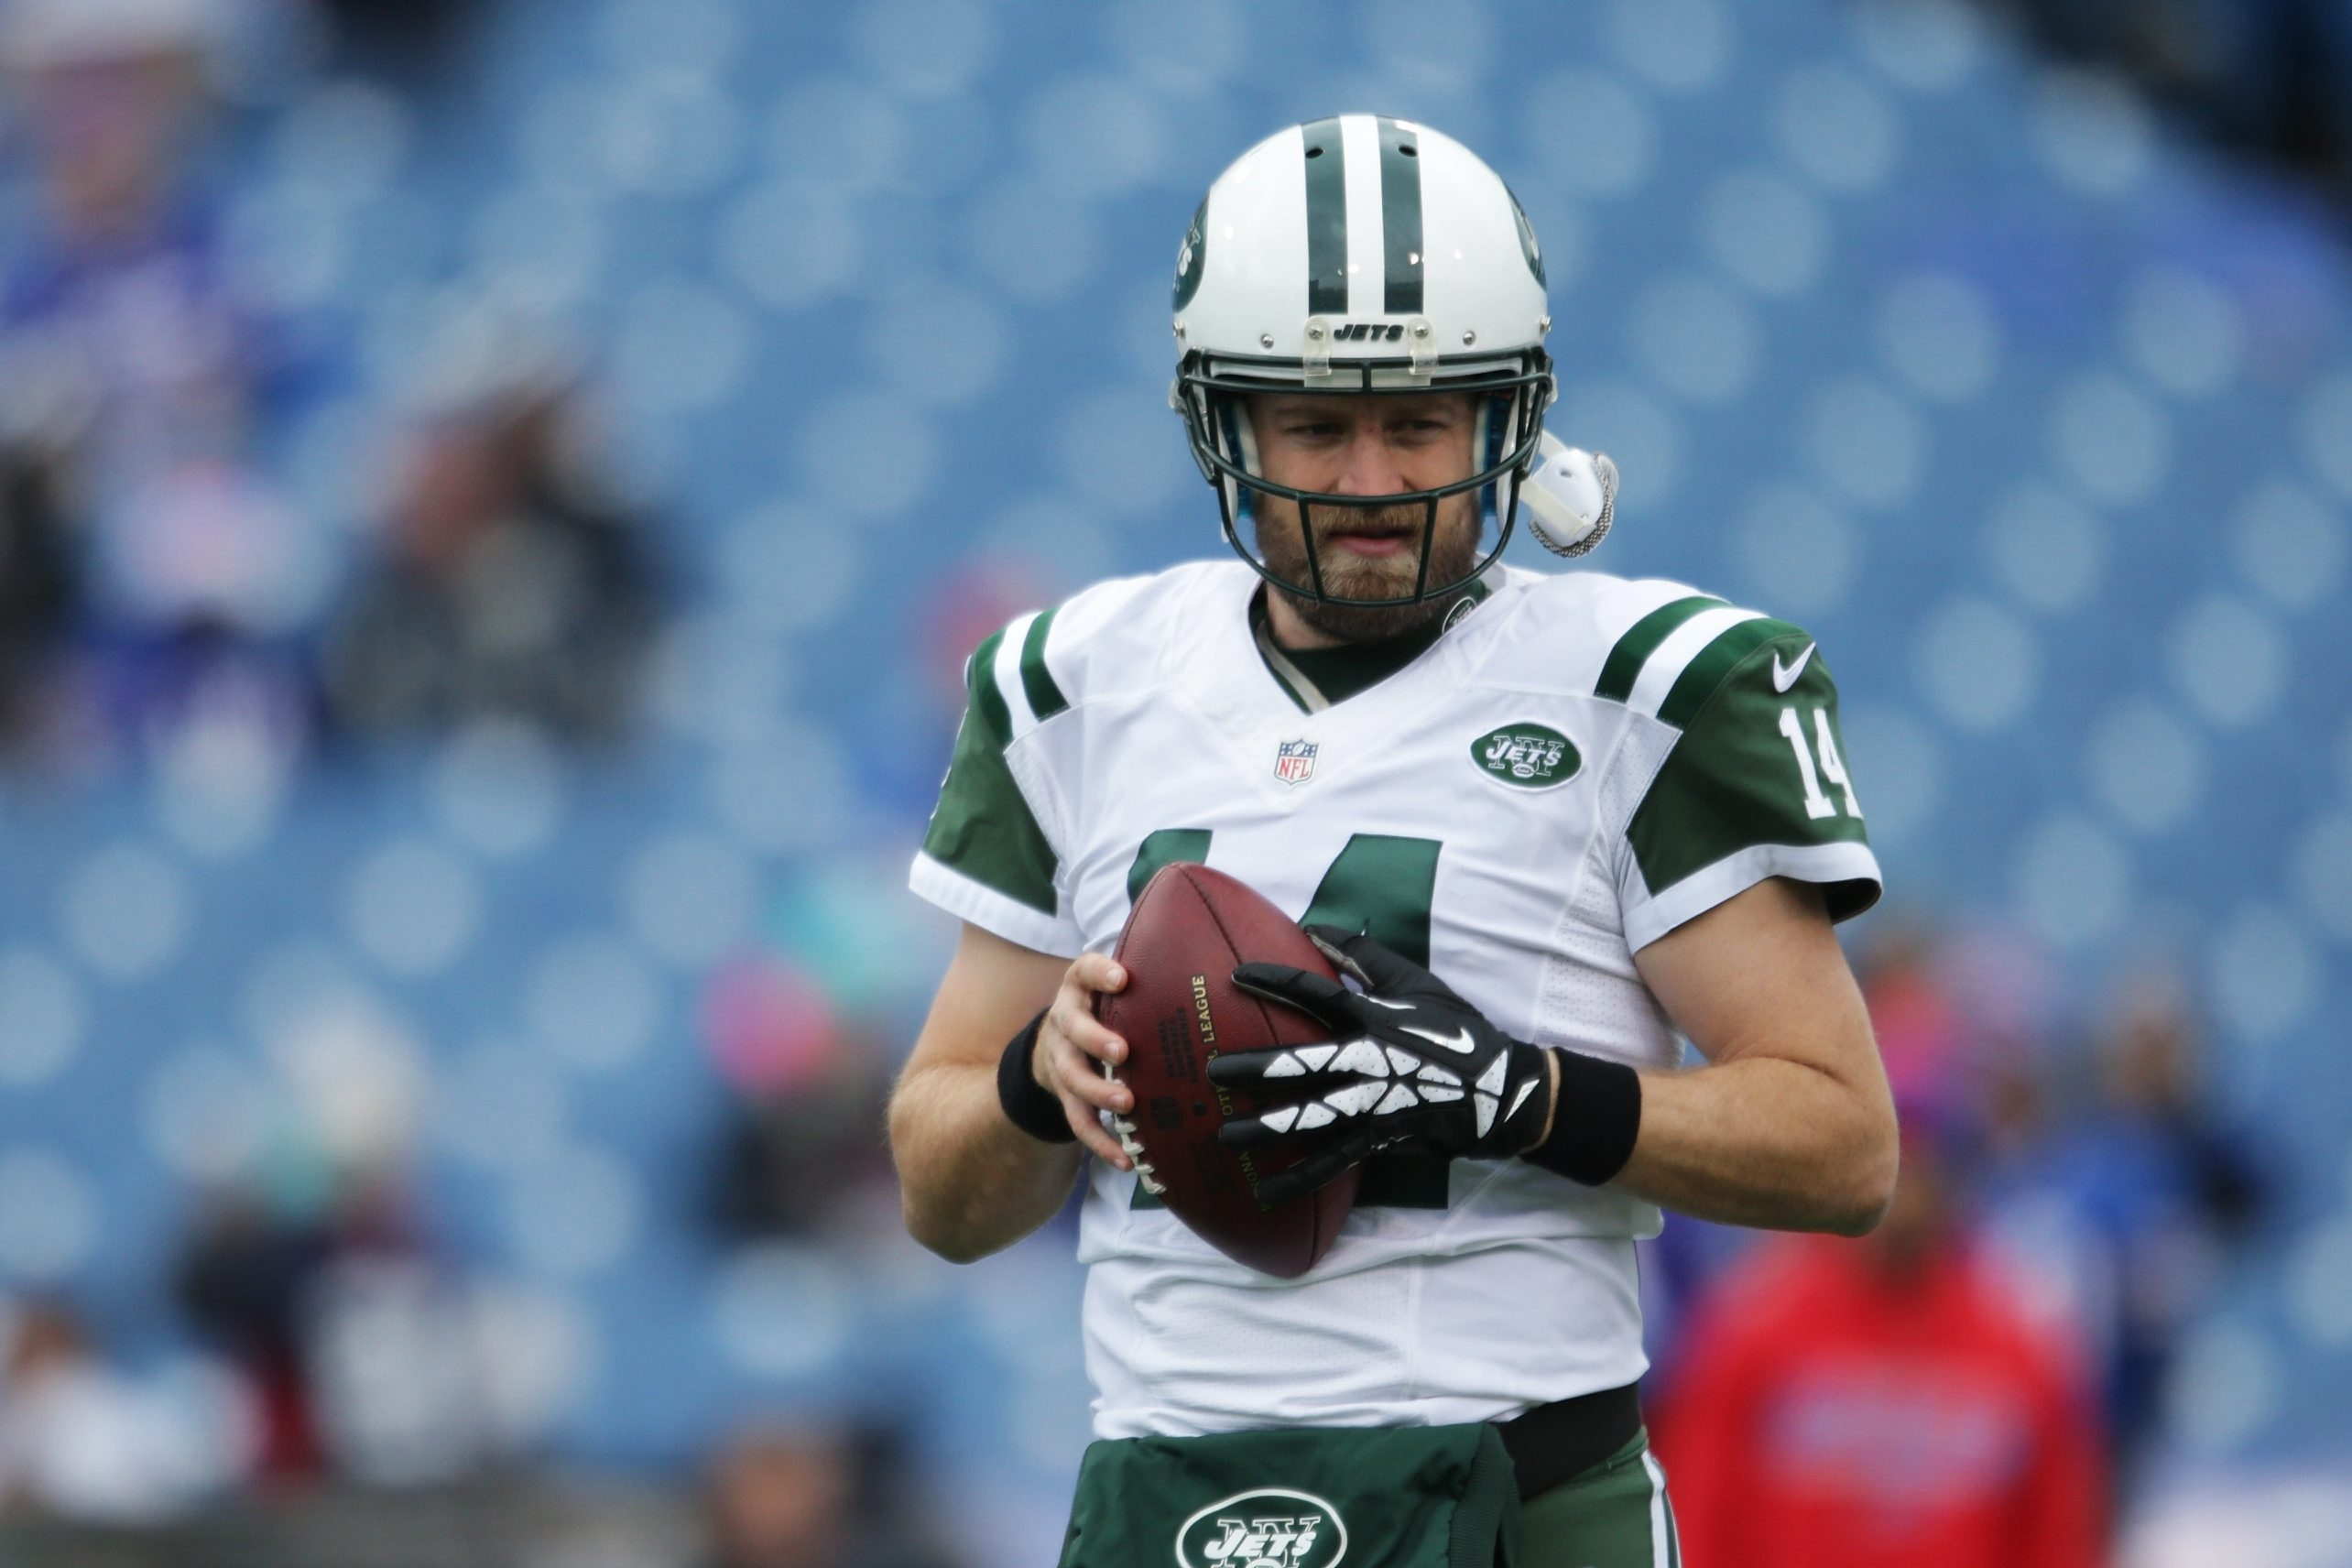 Ryan Fitzpatrick would regret retiring and should accept the Jets' contract offer, even if he thinks its too low.